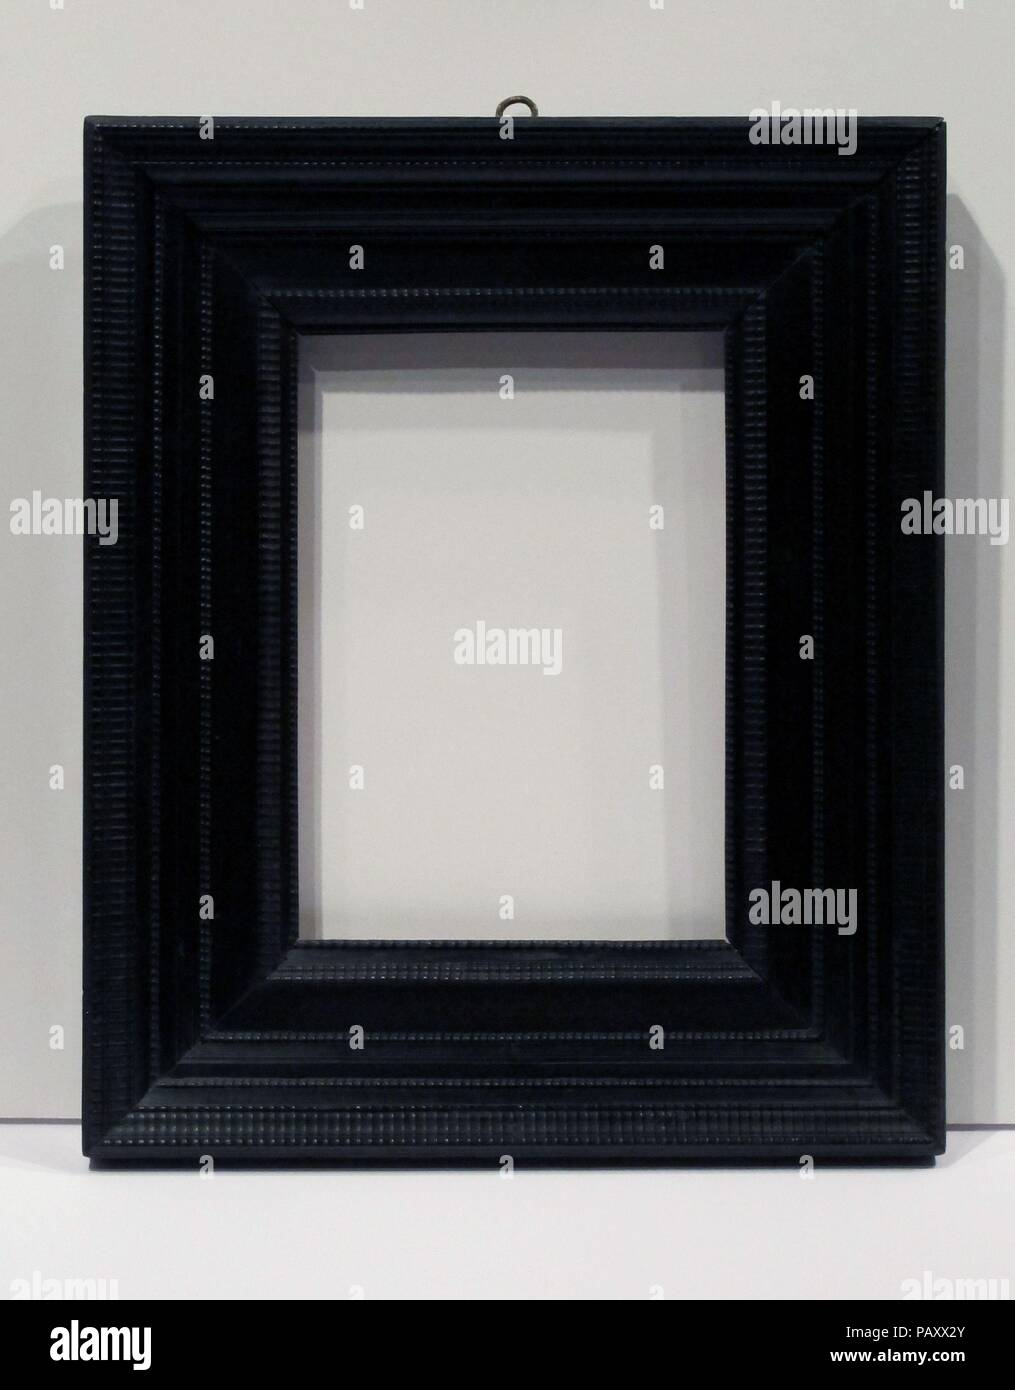 Frame Dimensions Overall 16 38 X 13 38 In Sight 9 1116 X 6